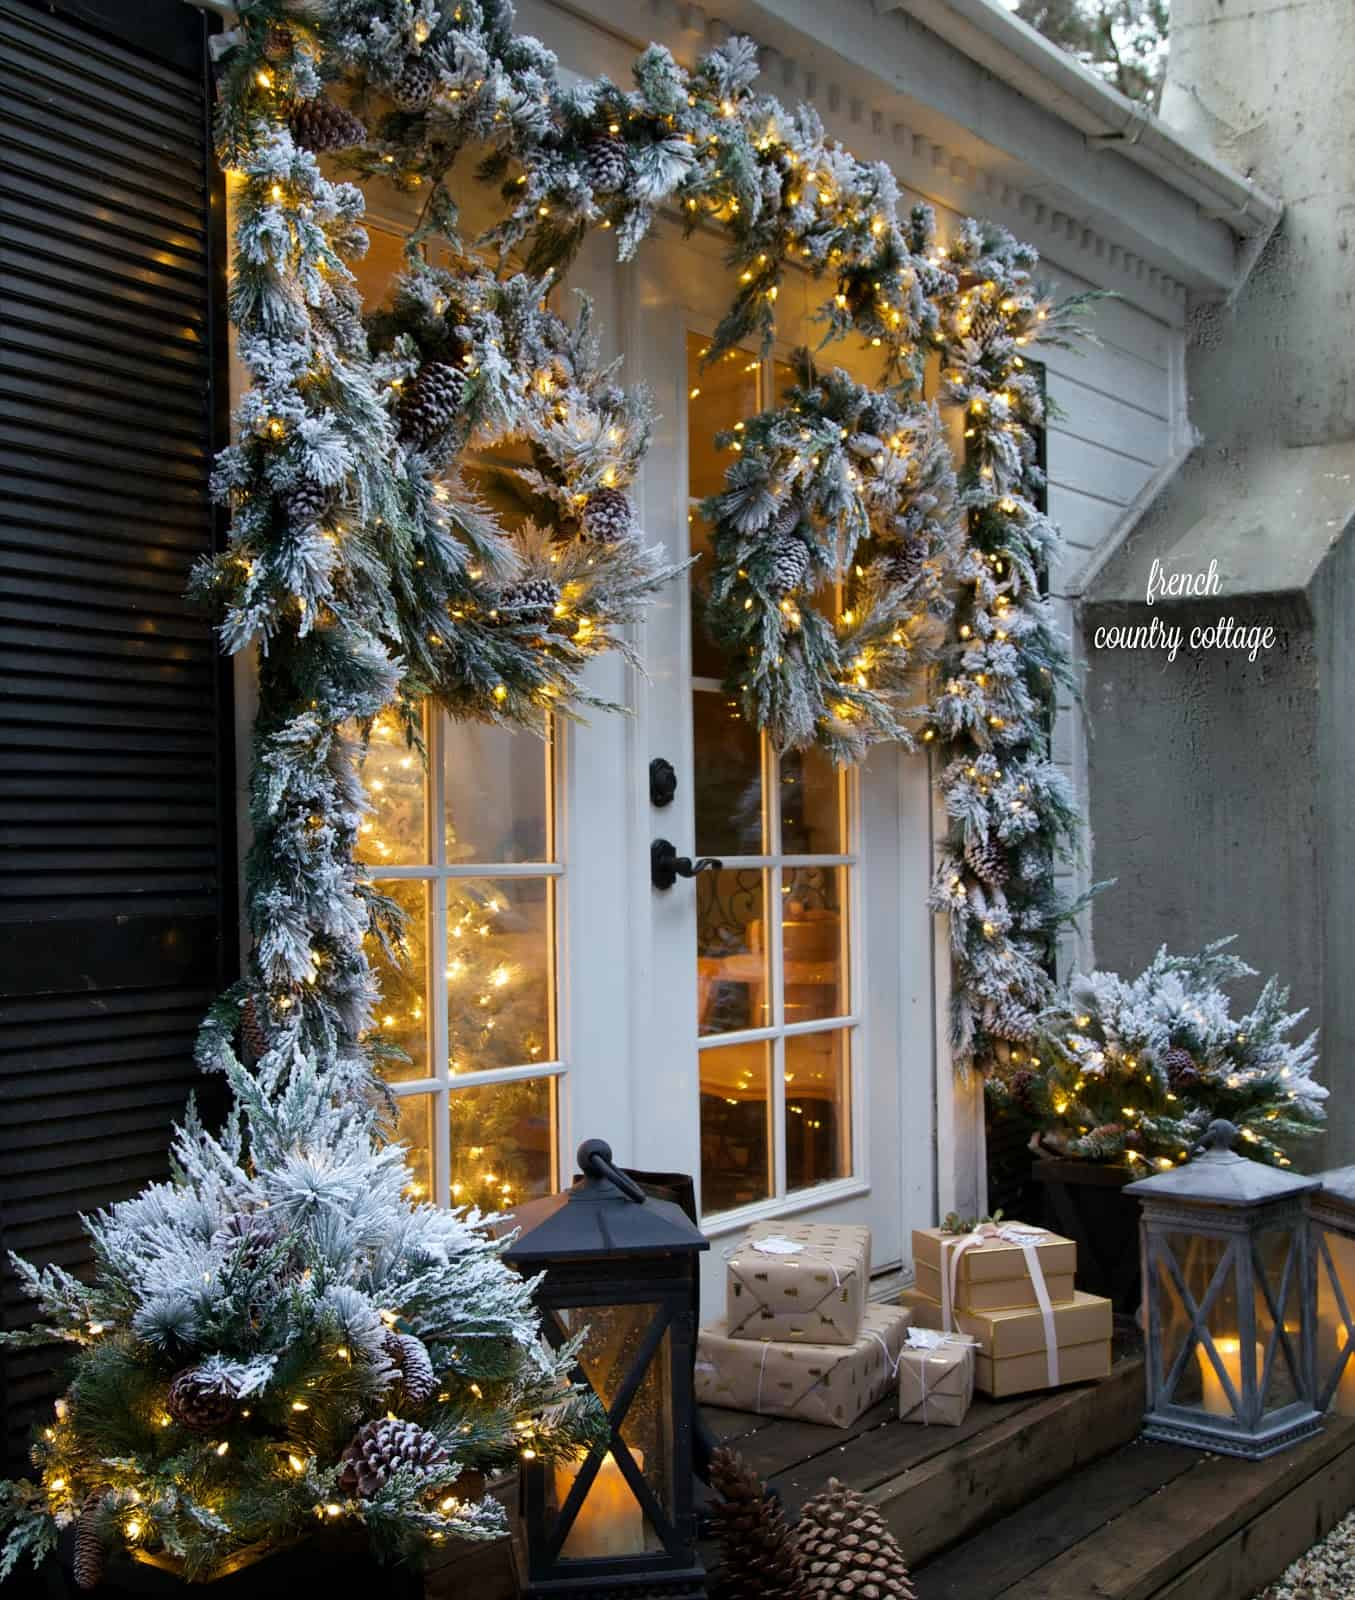 25 Stunning Outdoor Christmas Decorations To Make The Season Bright